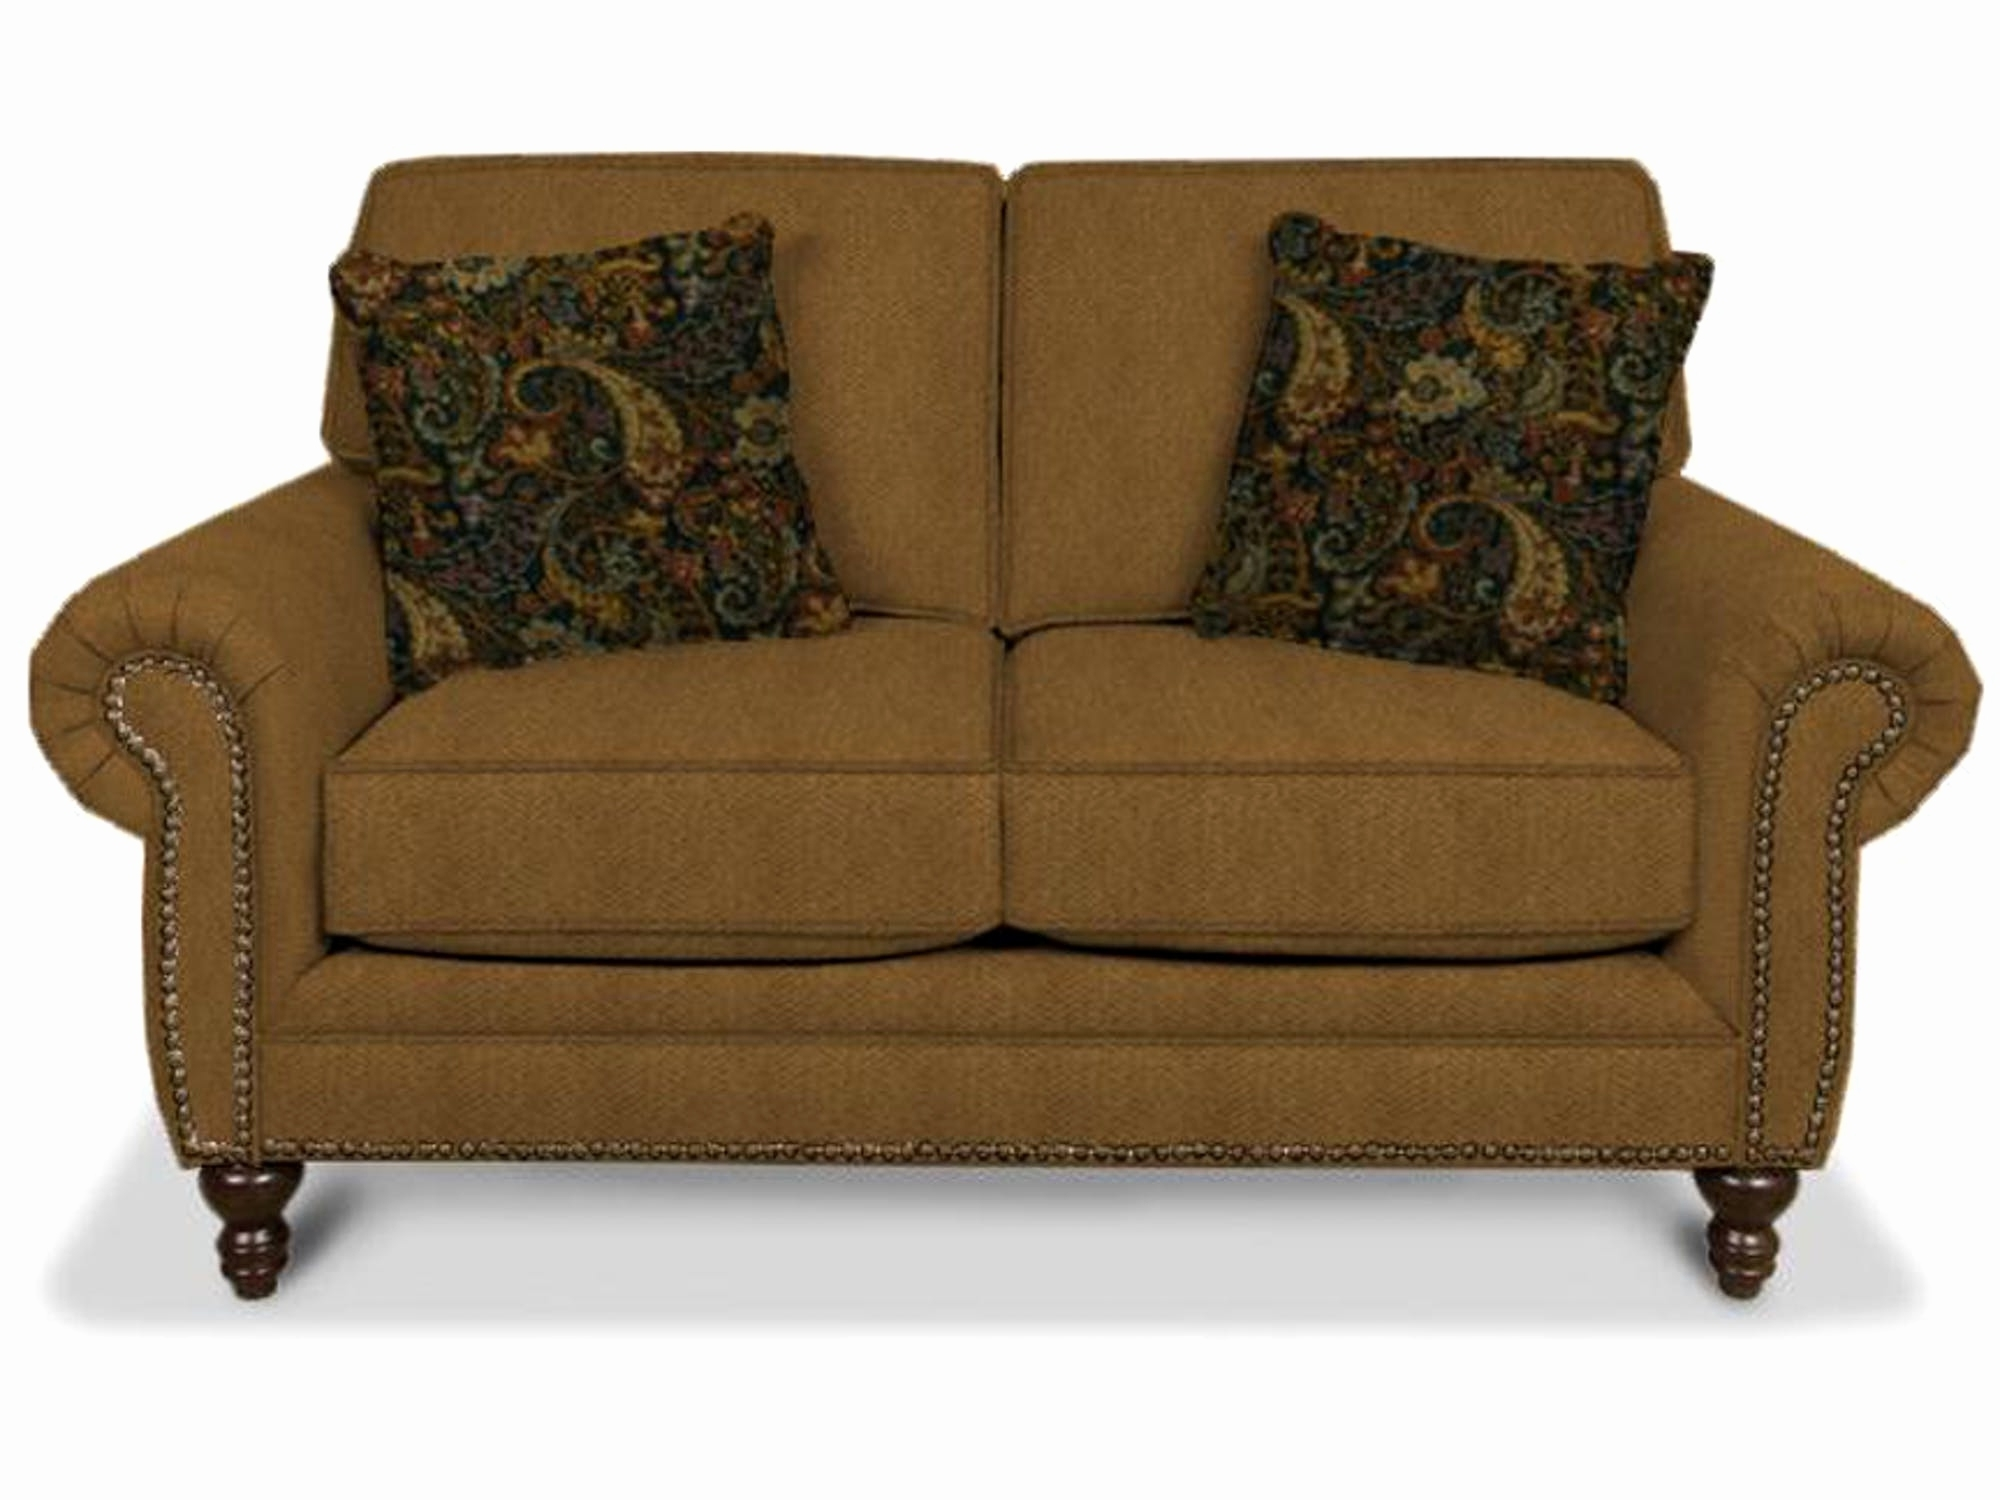 Dayton Ohio Sectional Sofas With Well Known Fresh England Sectional Sofa 2018 – Couches And Sofas Ideas (View 7 of 15)